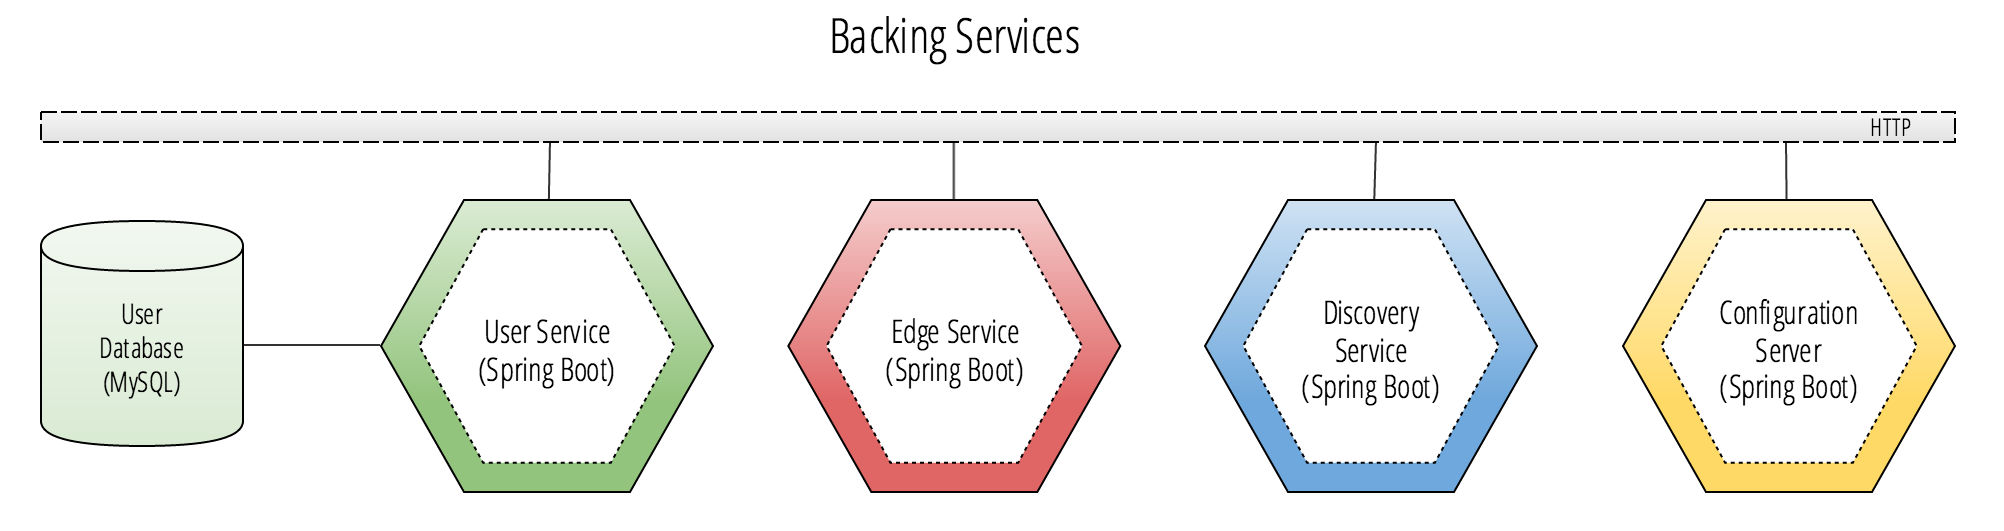 Spring Cloud services